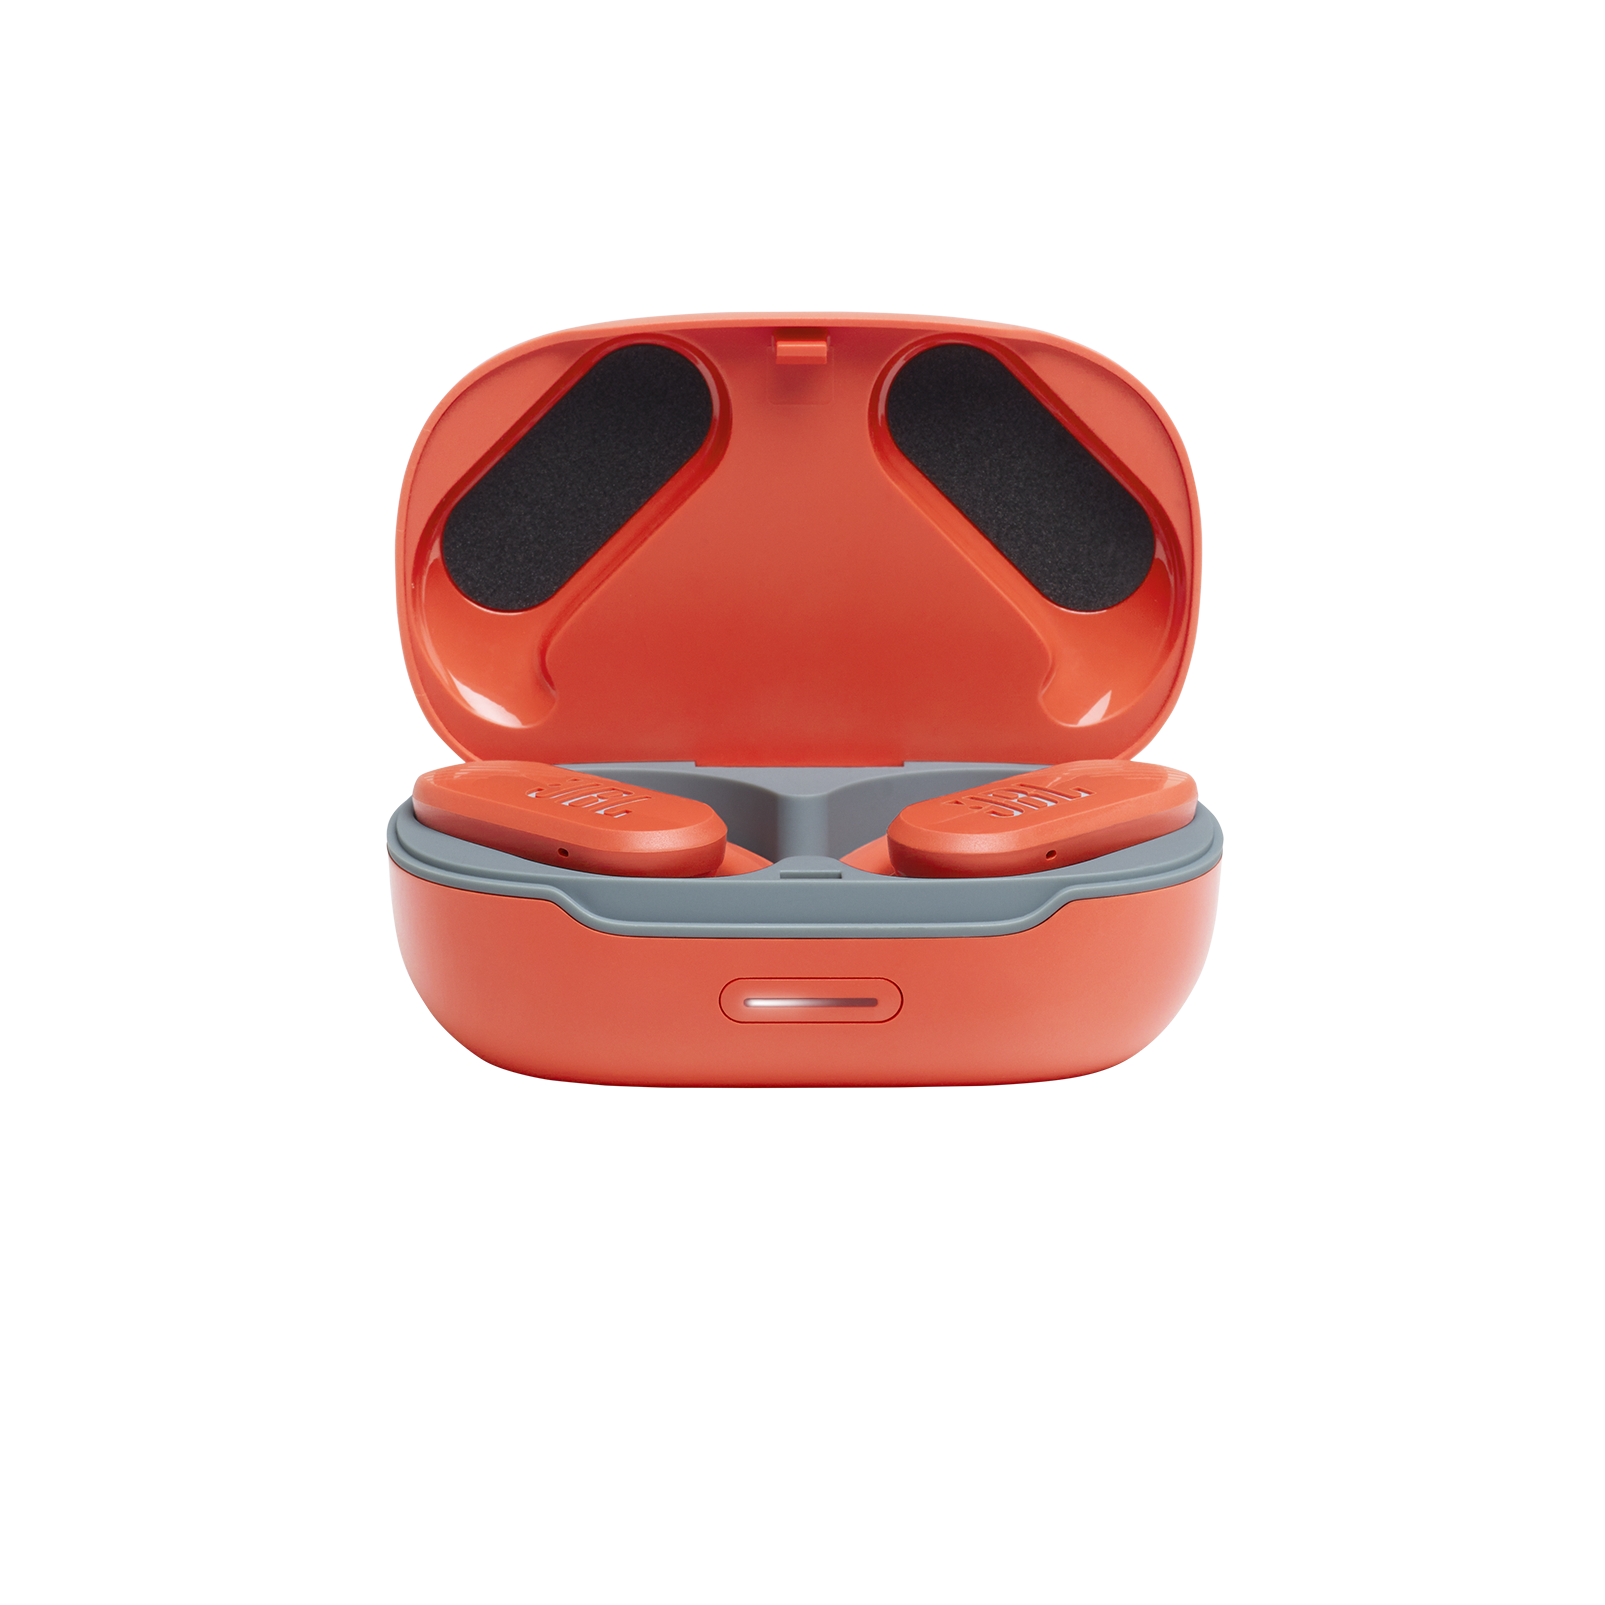 JBL Endurance Peak II - Coral Orange - Waterproof True Wireless In-Ear Sport Headphones - Detailshot 2